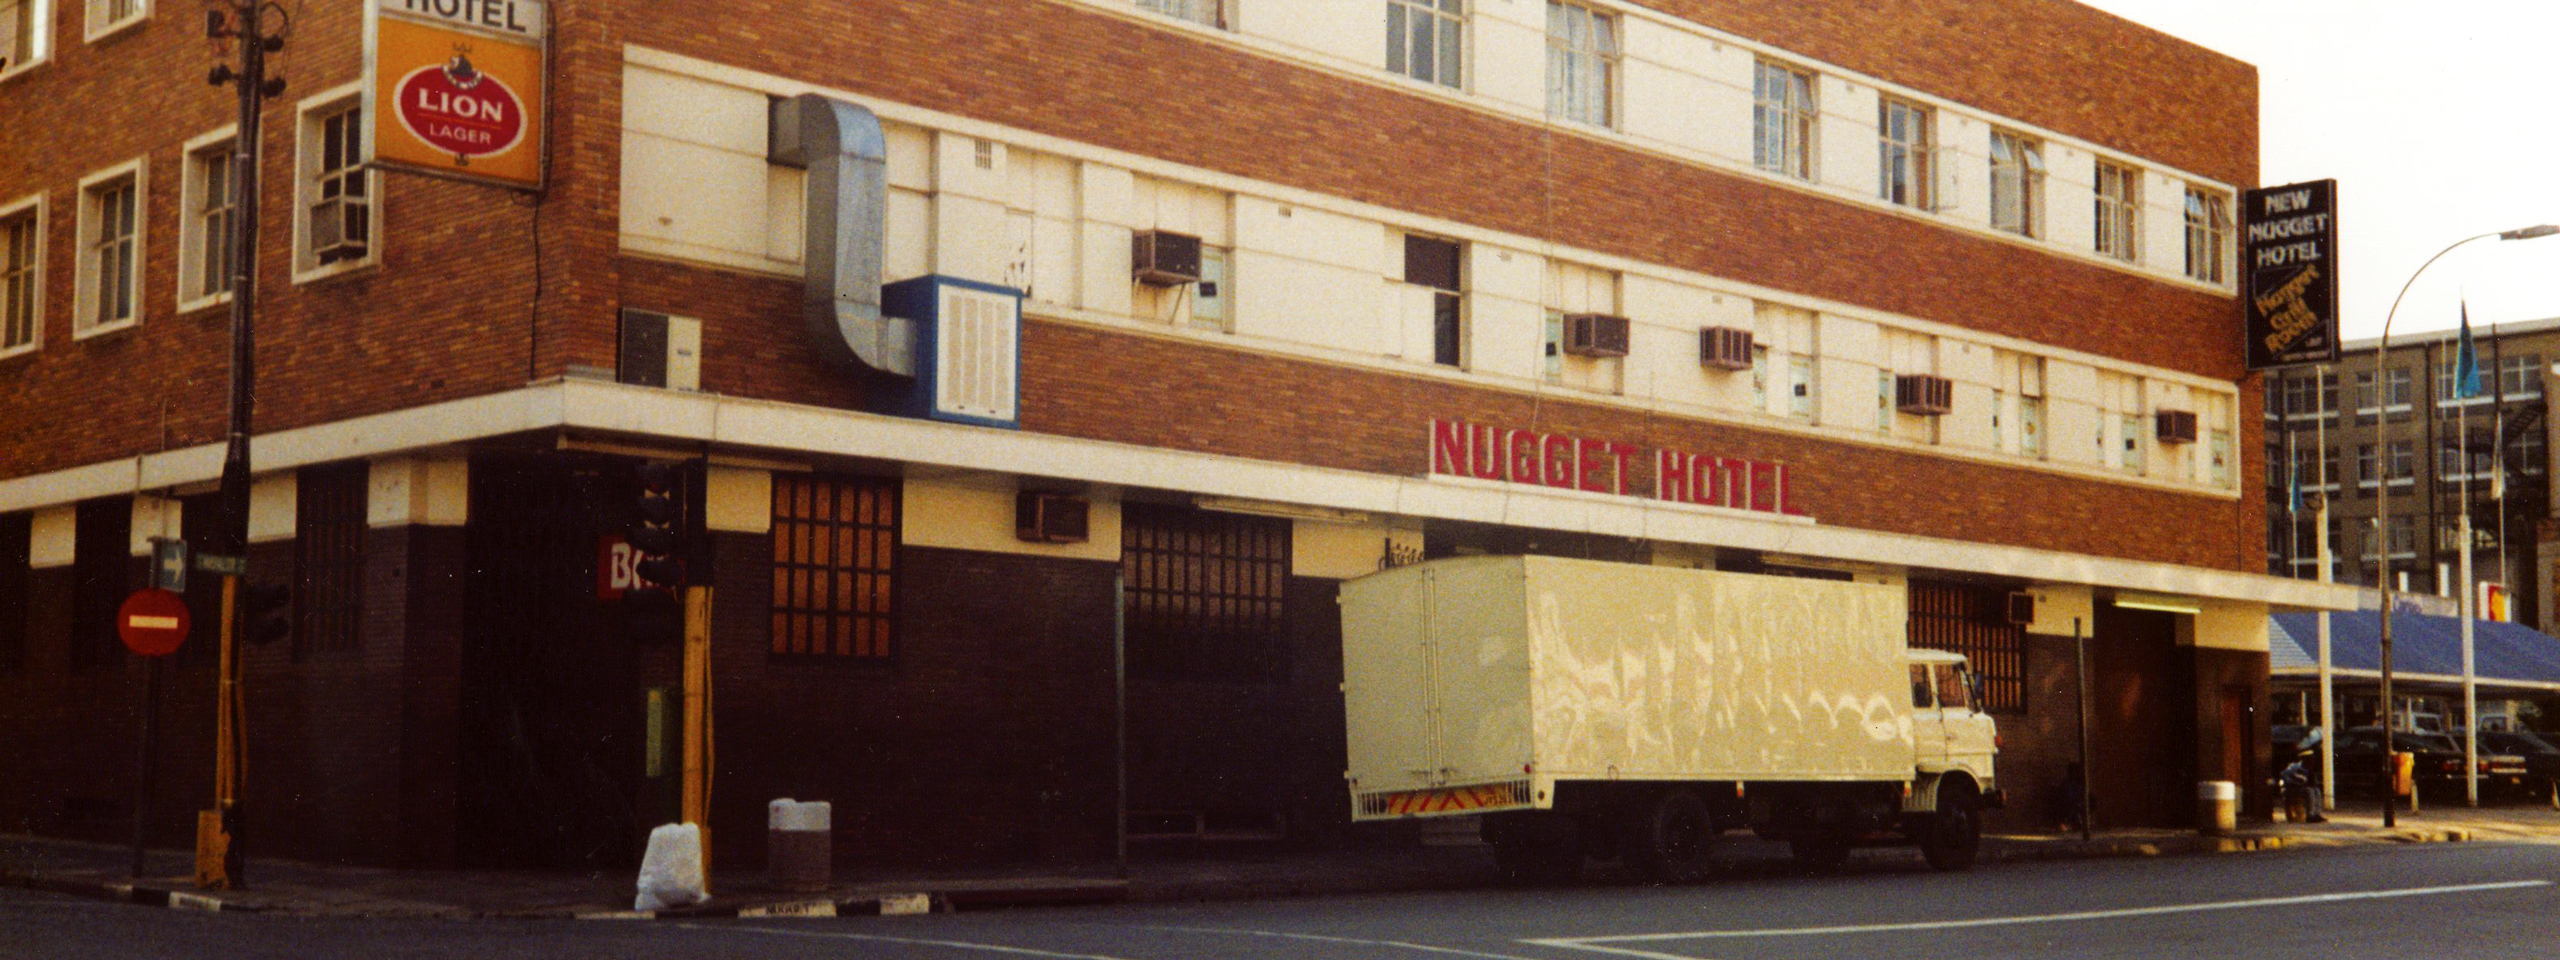 The Nugget Hotel, Johannesburg